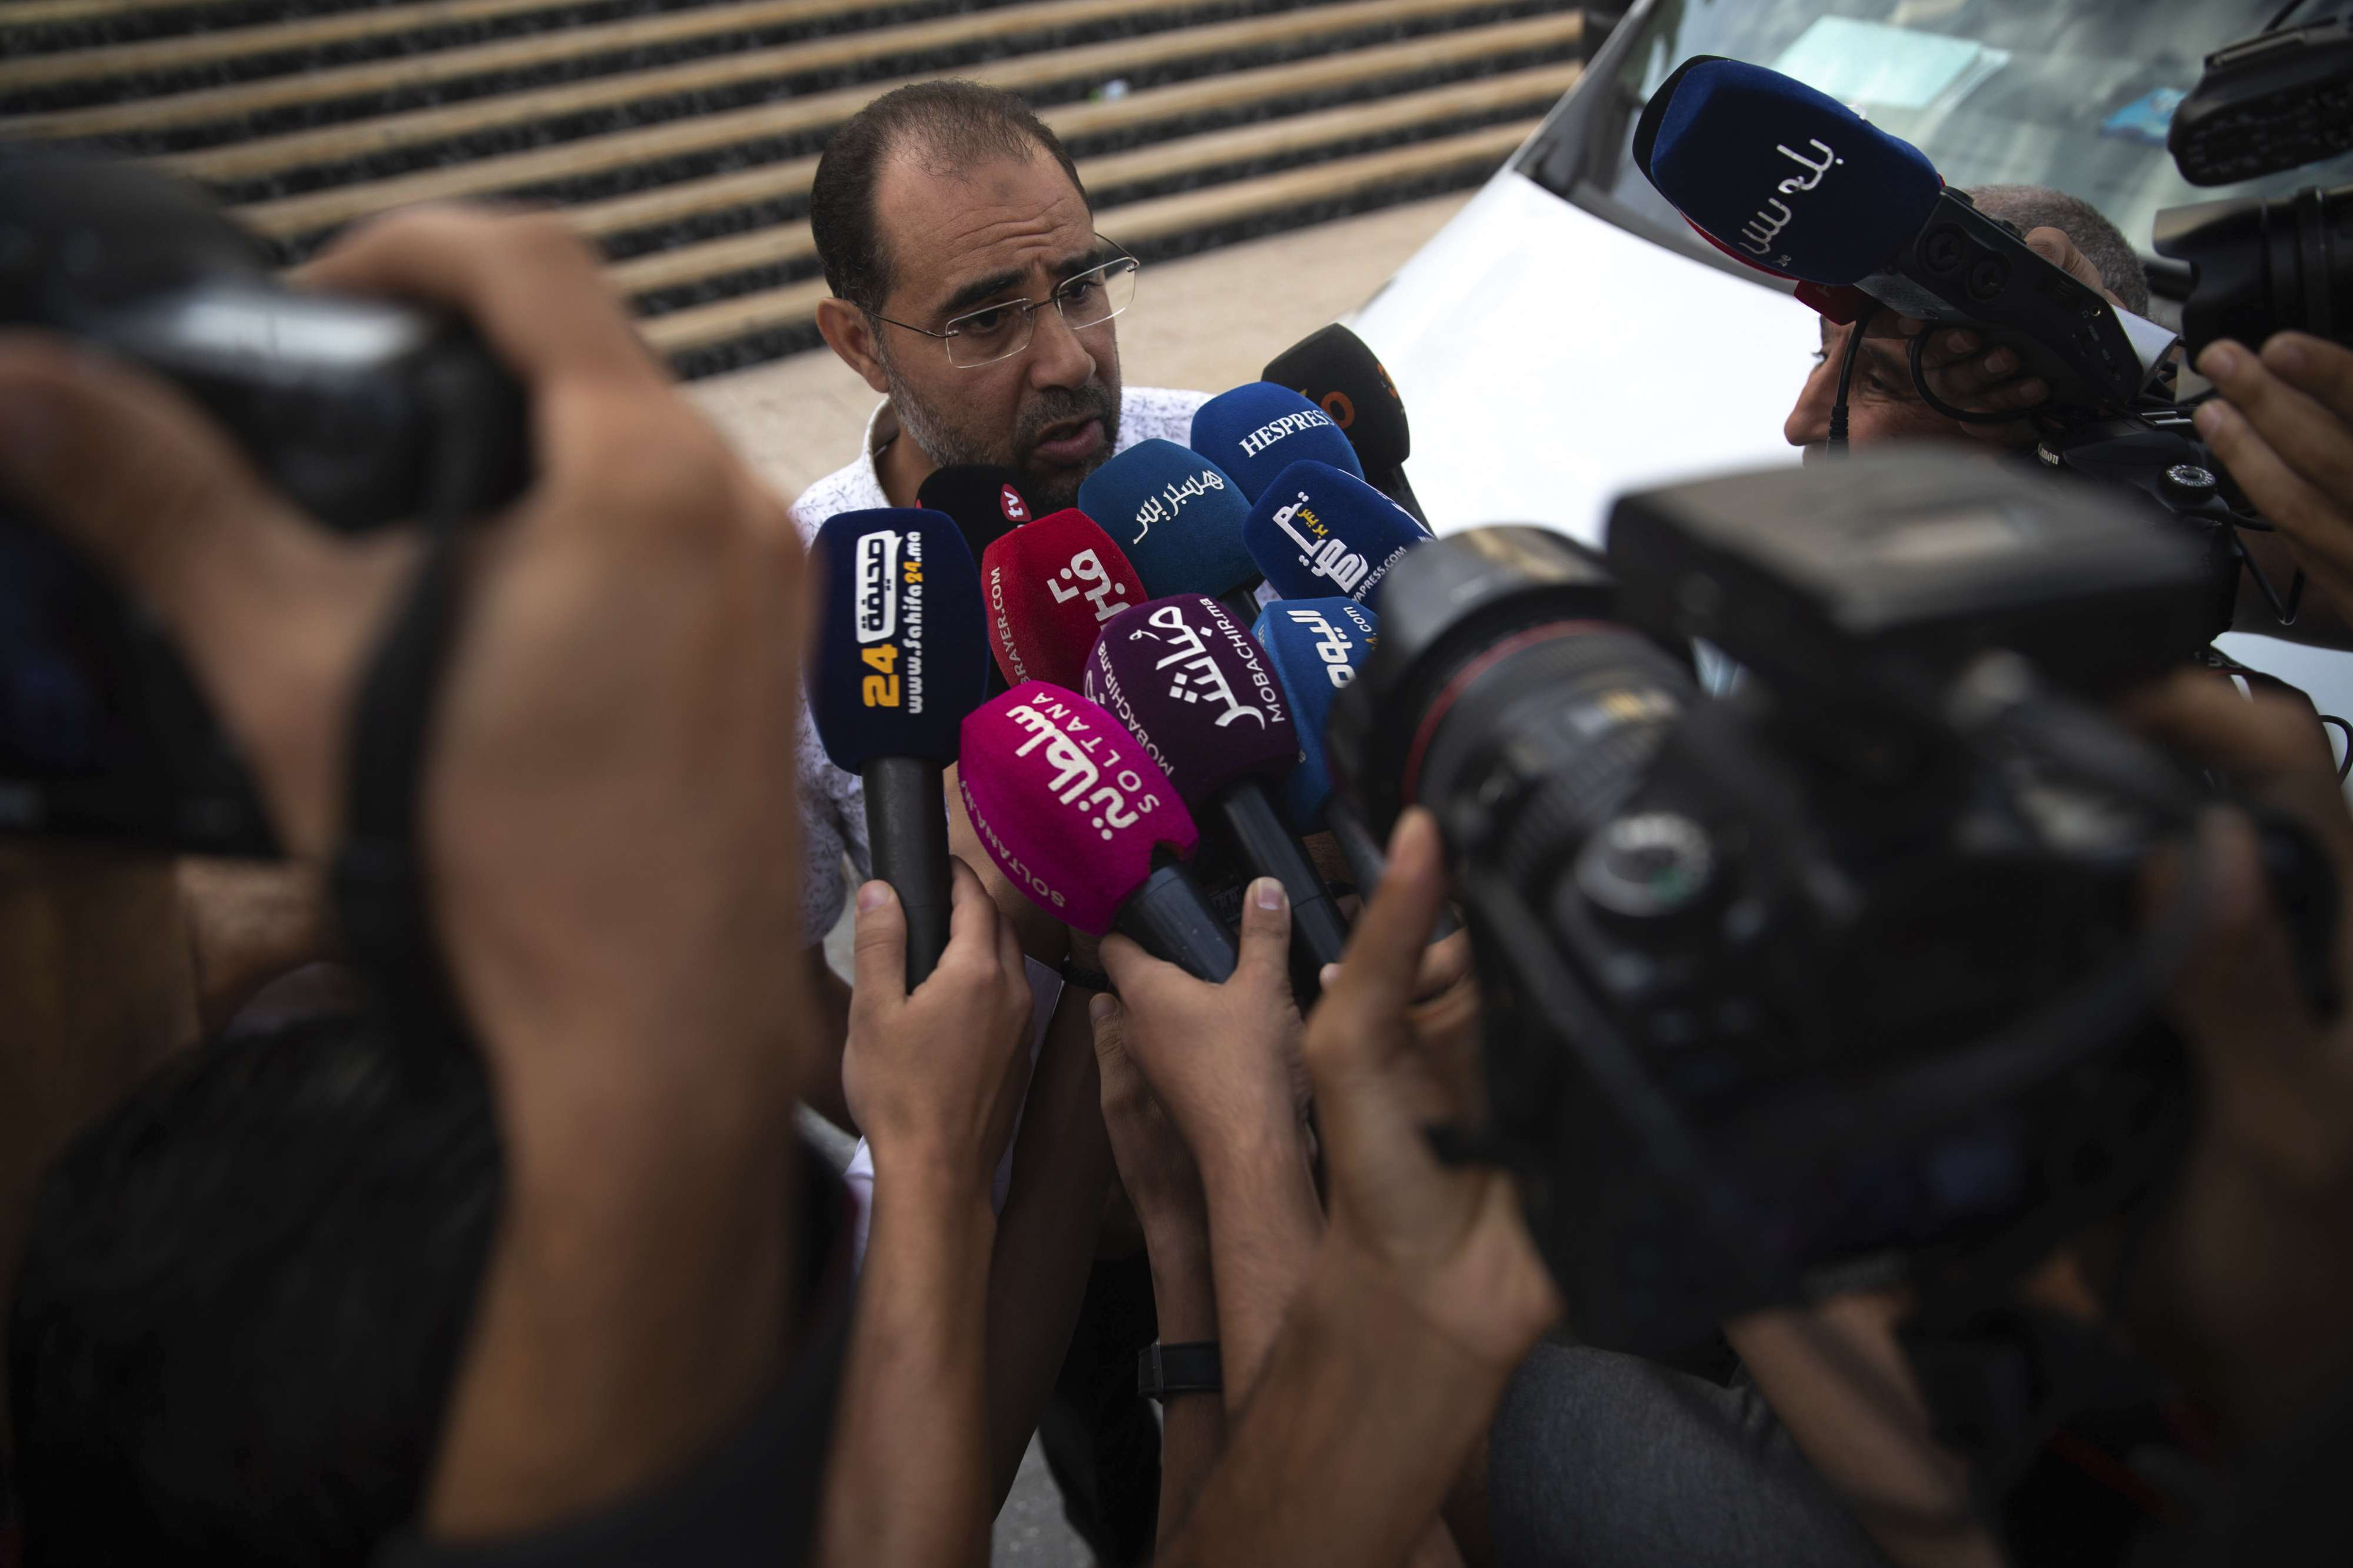 Suleyman Rissouni, uncle of journalist Hajar Rissouni and editor in chief of Akhbar Al-Youm daily newspaper, speaks to the media in Rabat, Morocco, Monday, Sept. 30, 2019. (AP)